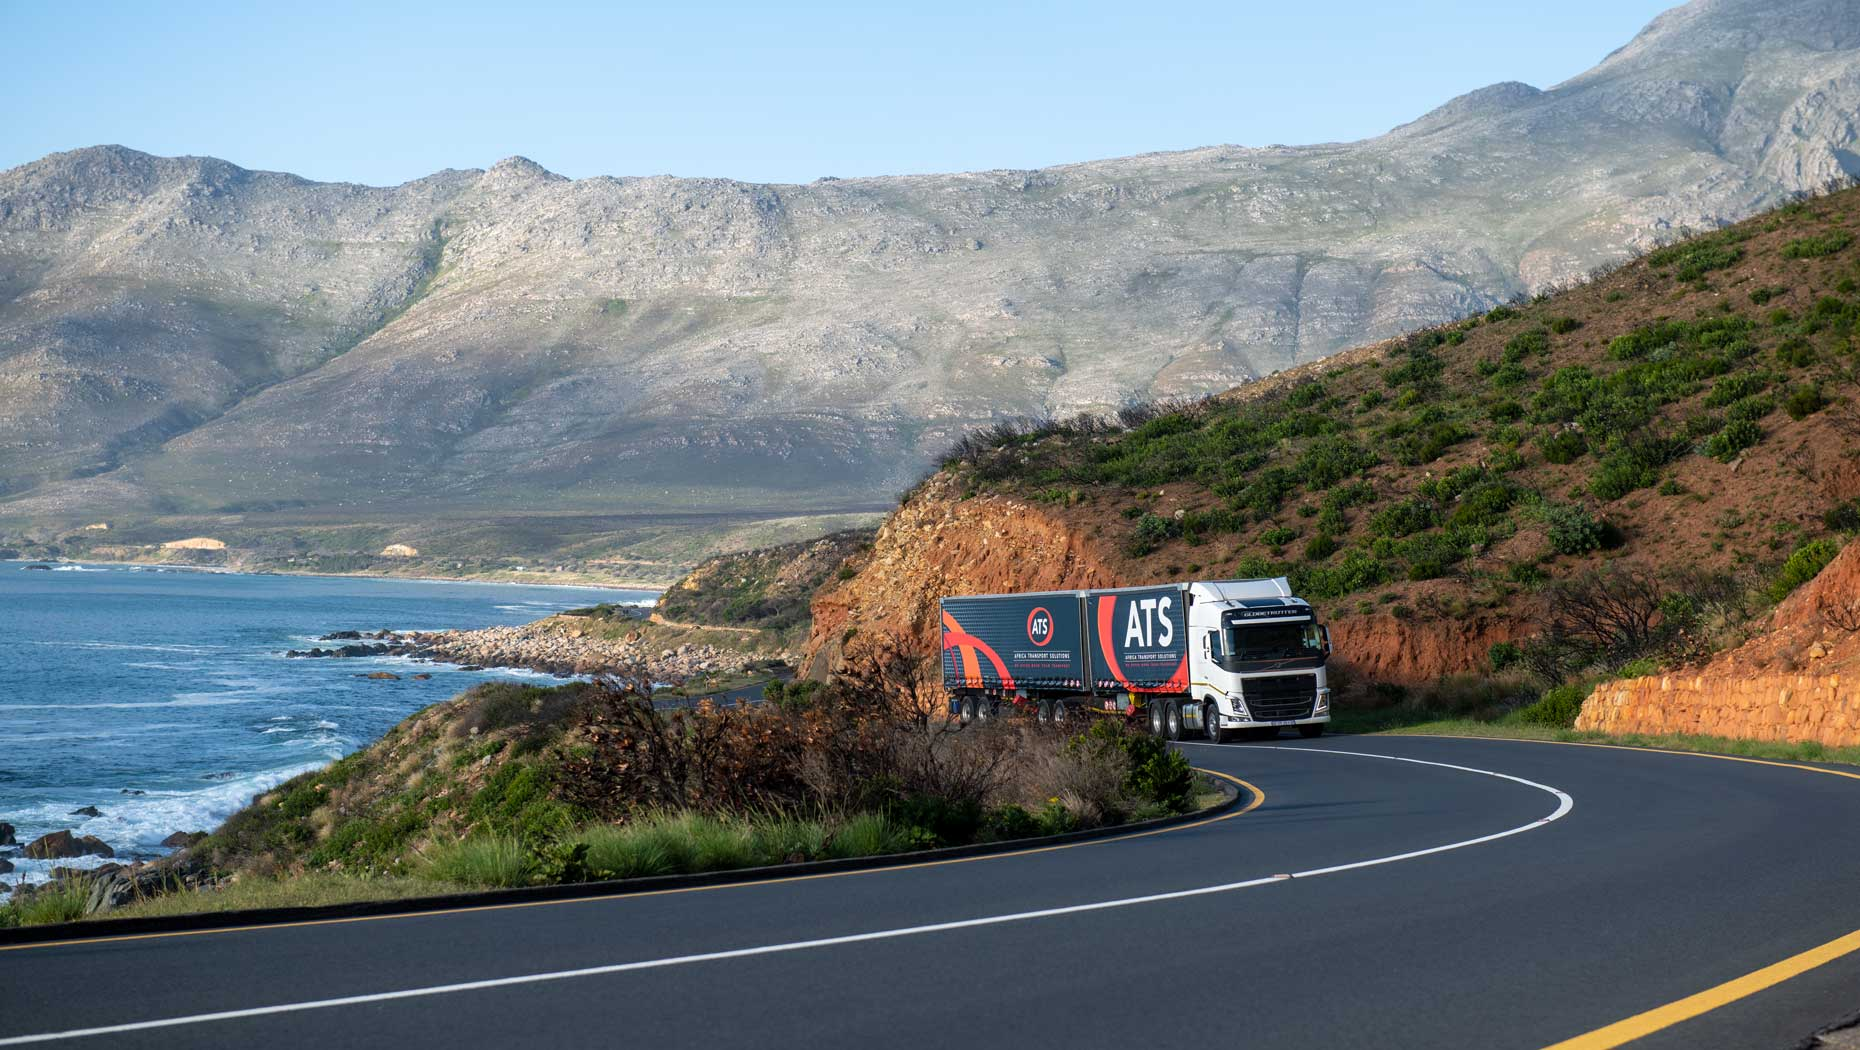 The Volvo FH with Volvo Torque Assist on the road in Cape Town, South Africa